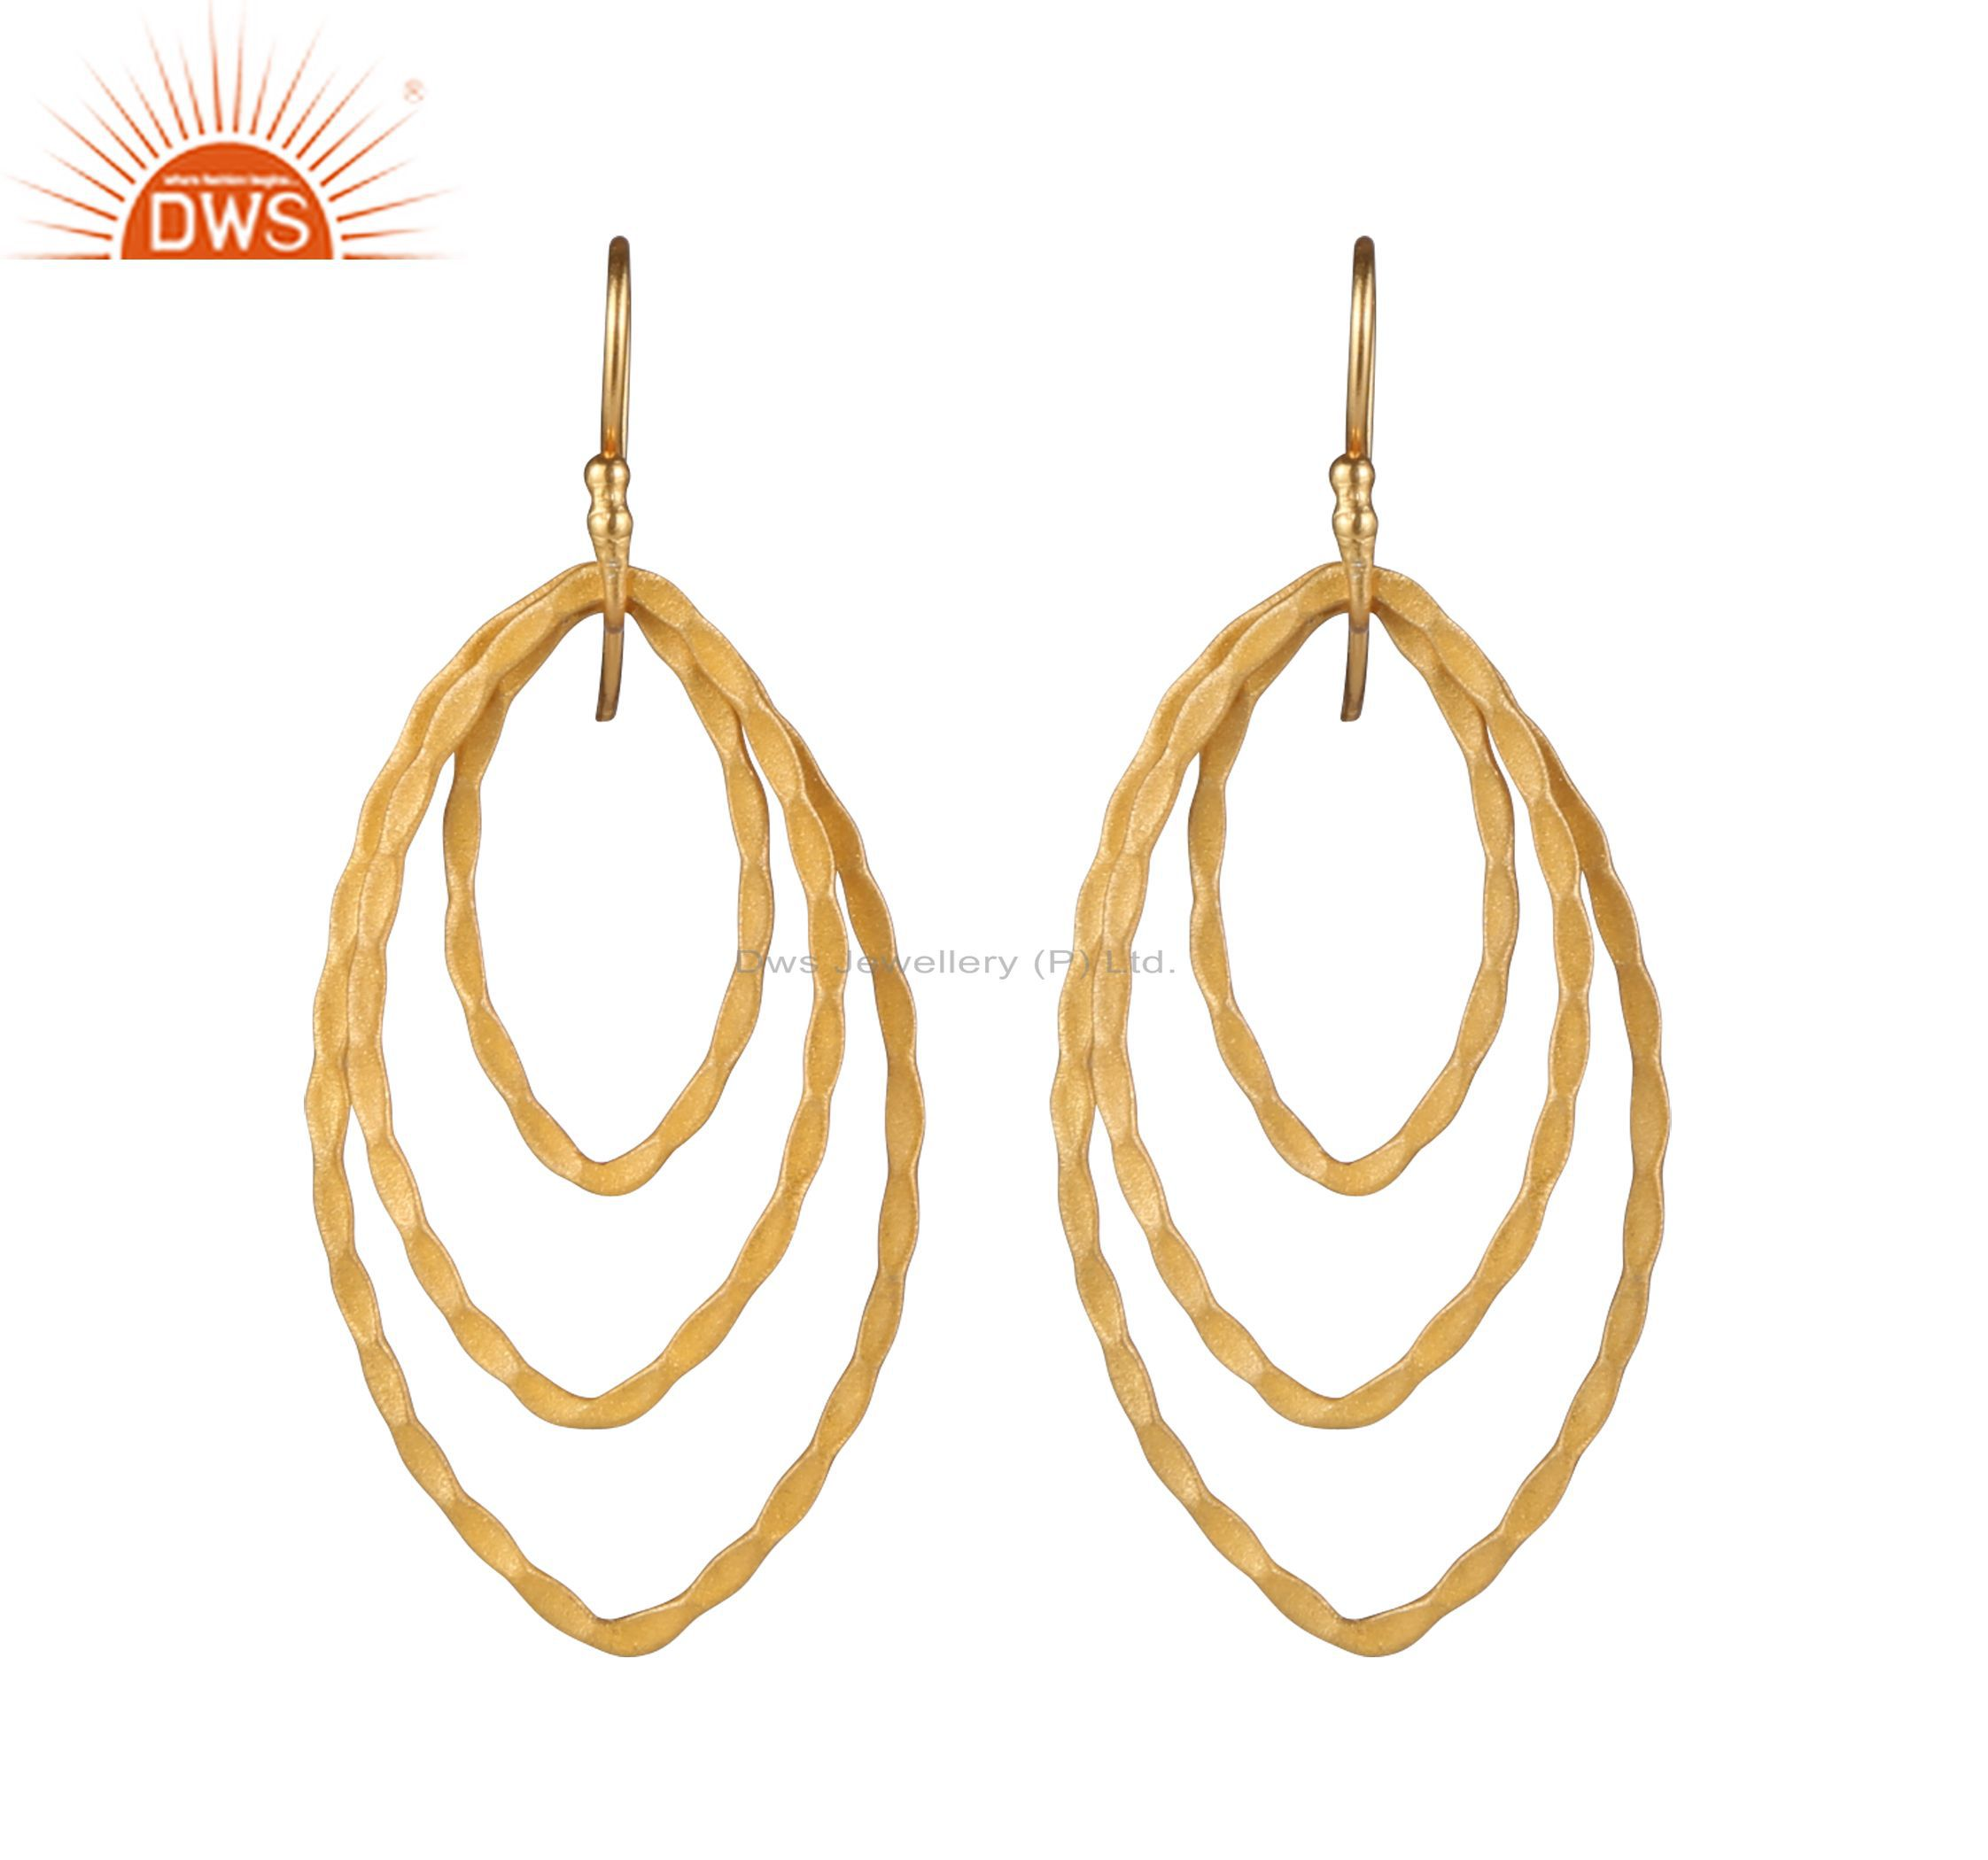 18K Yellow Gold Plated Sterling Silver Hammered Multi Link Circle Hook Earrings